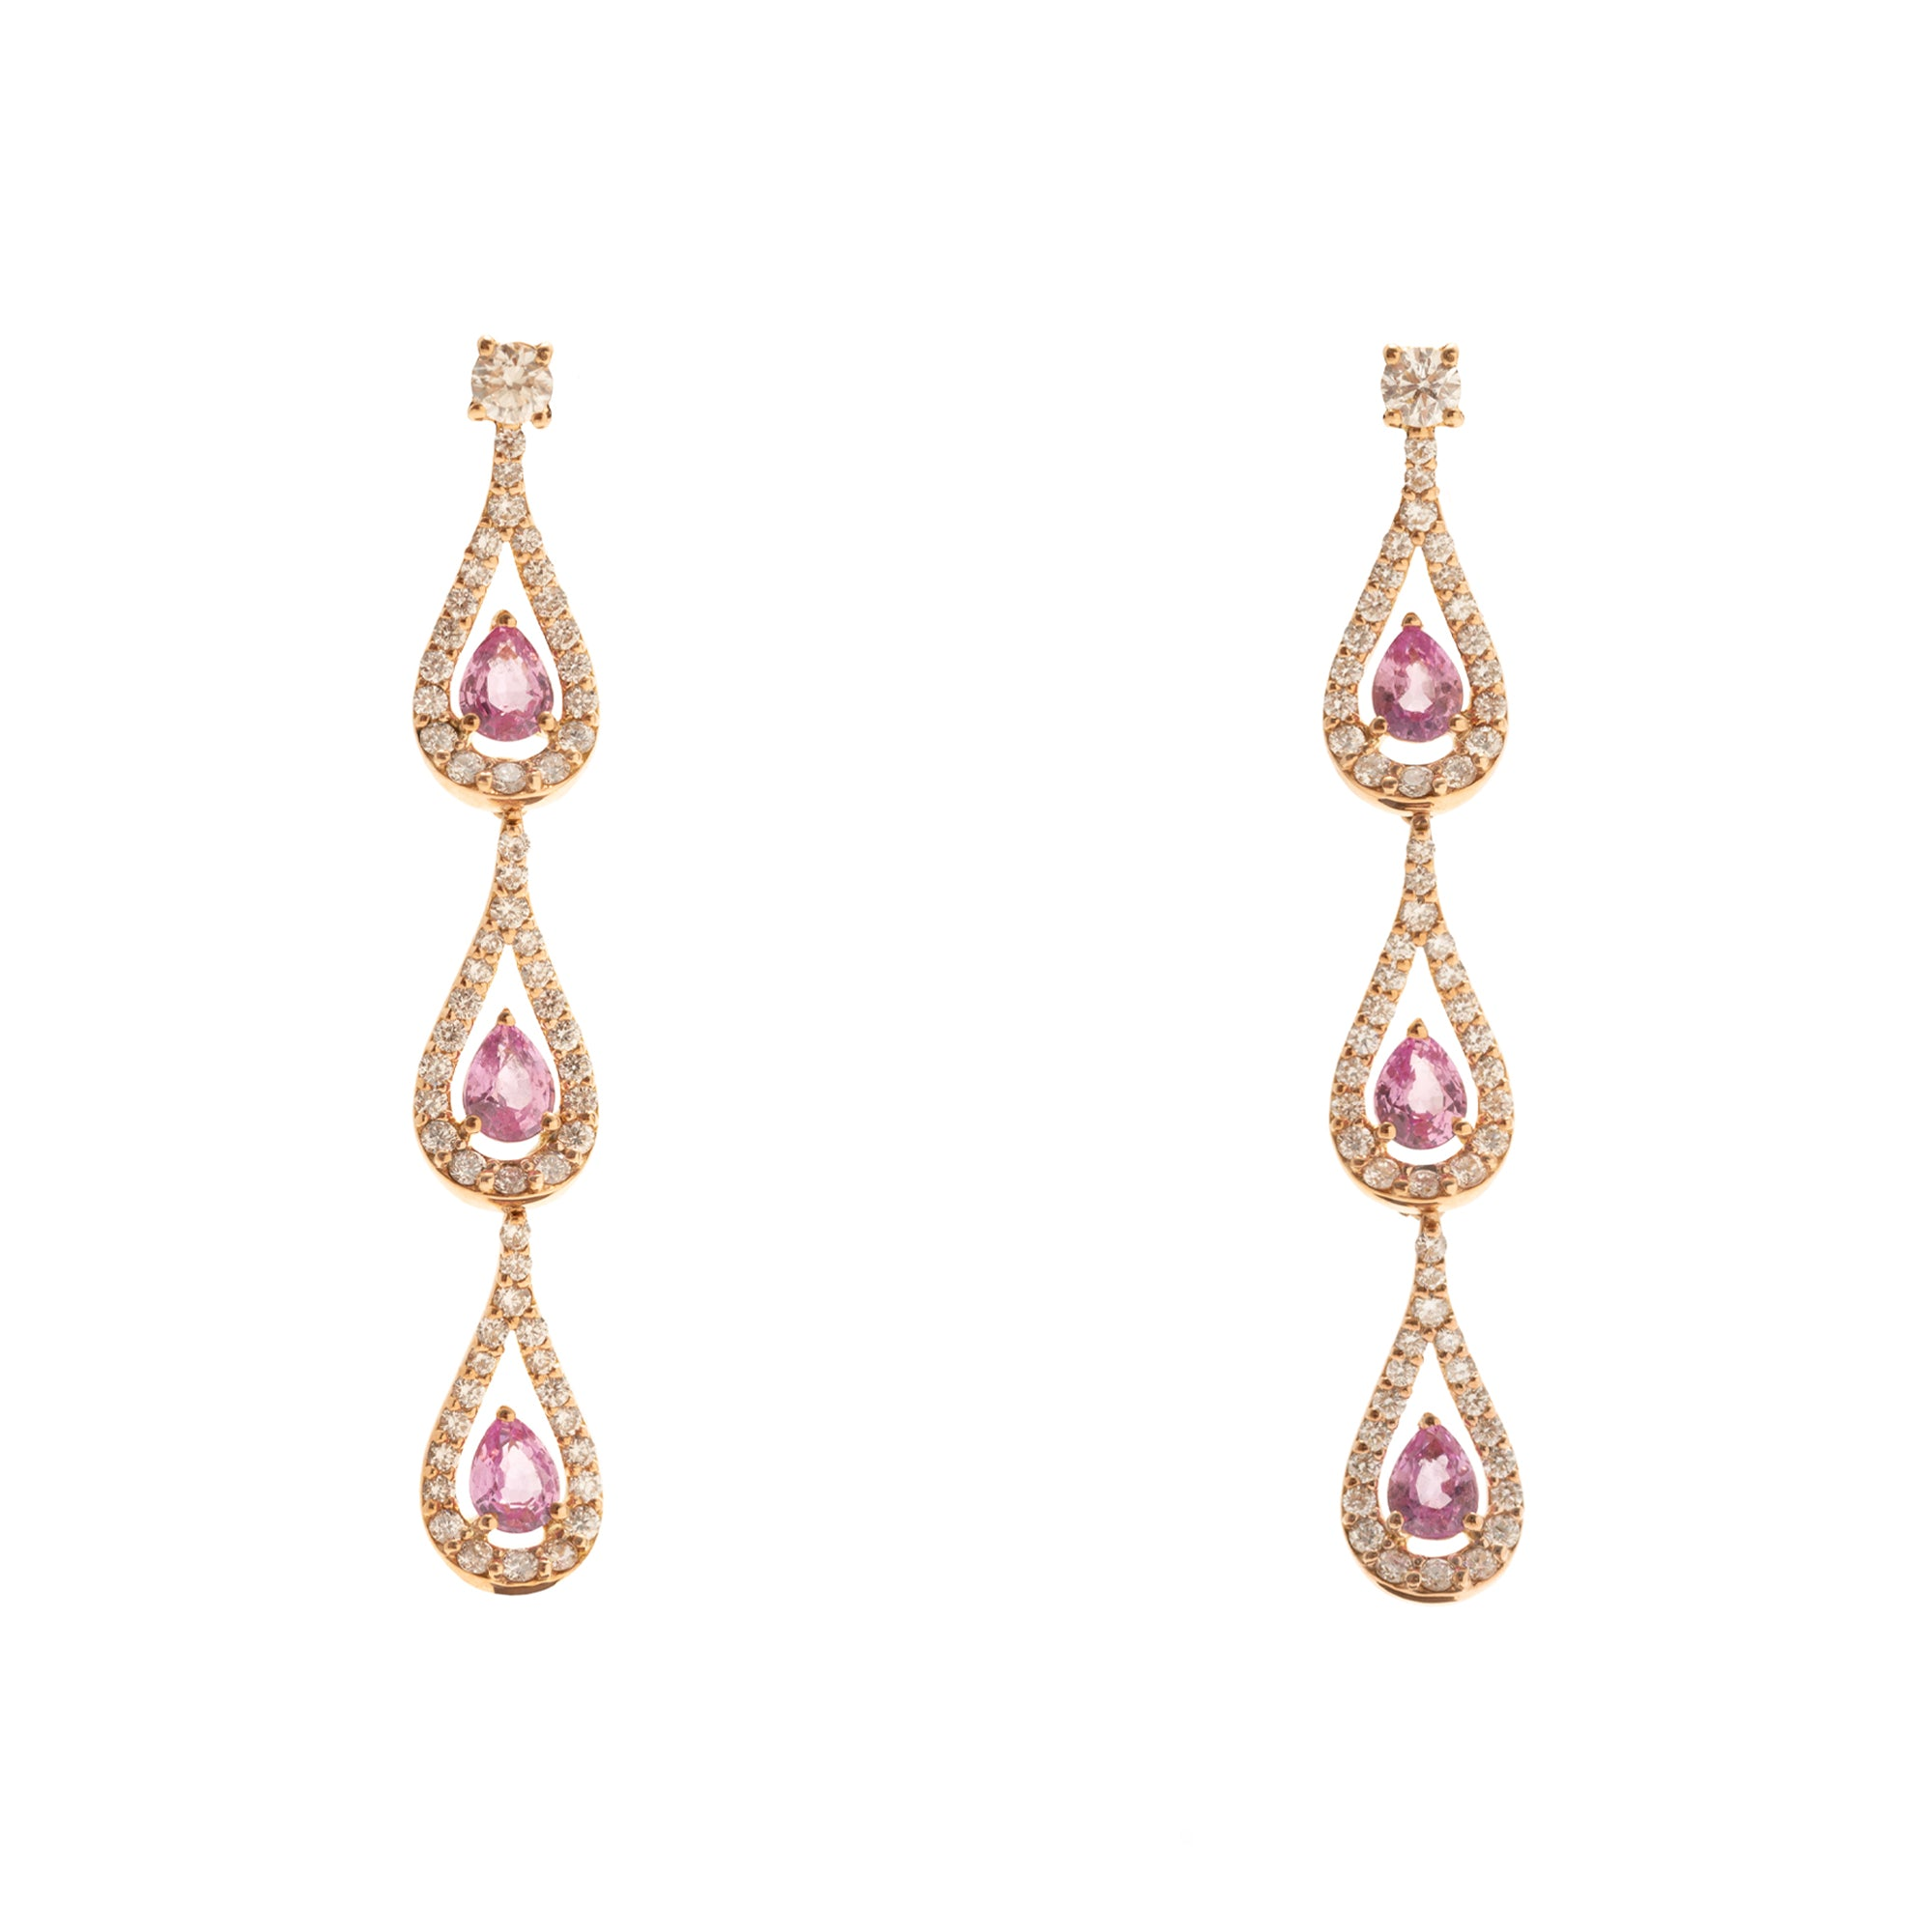 Era Rose Gold Earrings With Pink Sapphires Diamonds